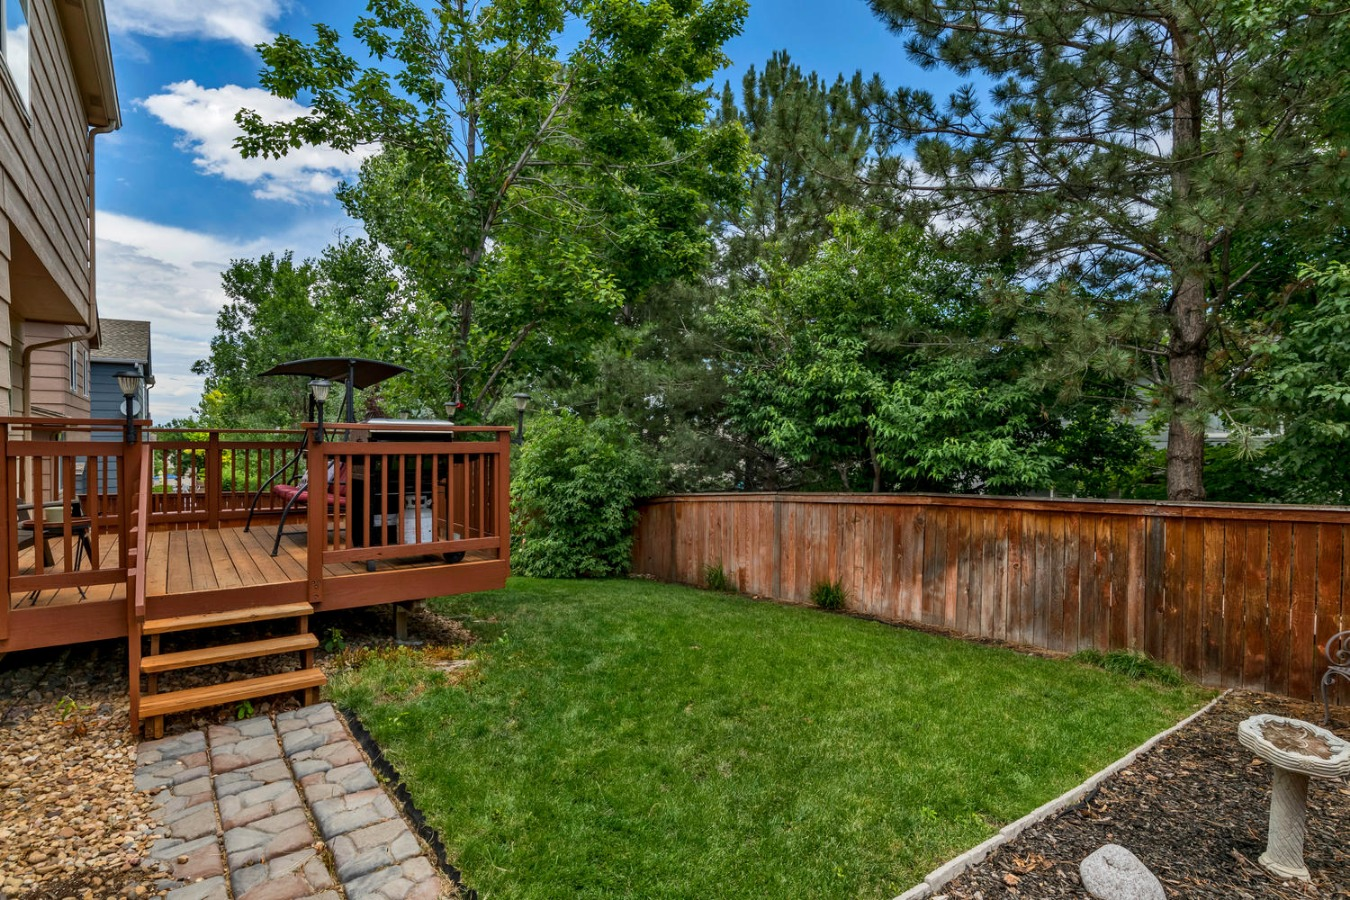 Low Maintenance Yard for Pets or Play